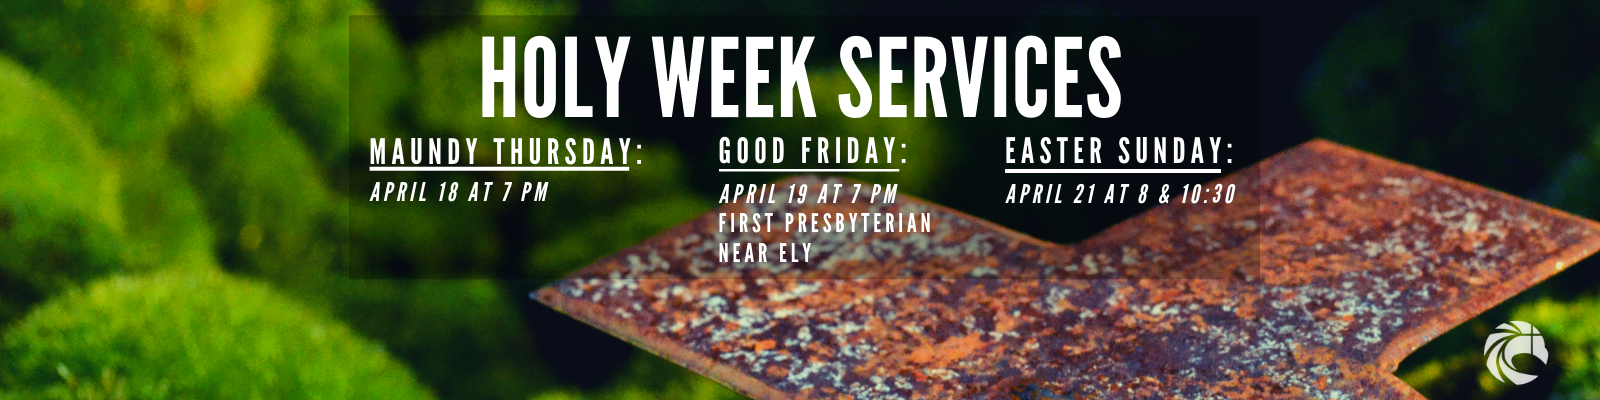 Join us this Holy Week as we journey through the last days of Lent leading up to Easter!